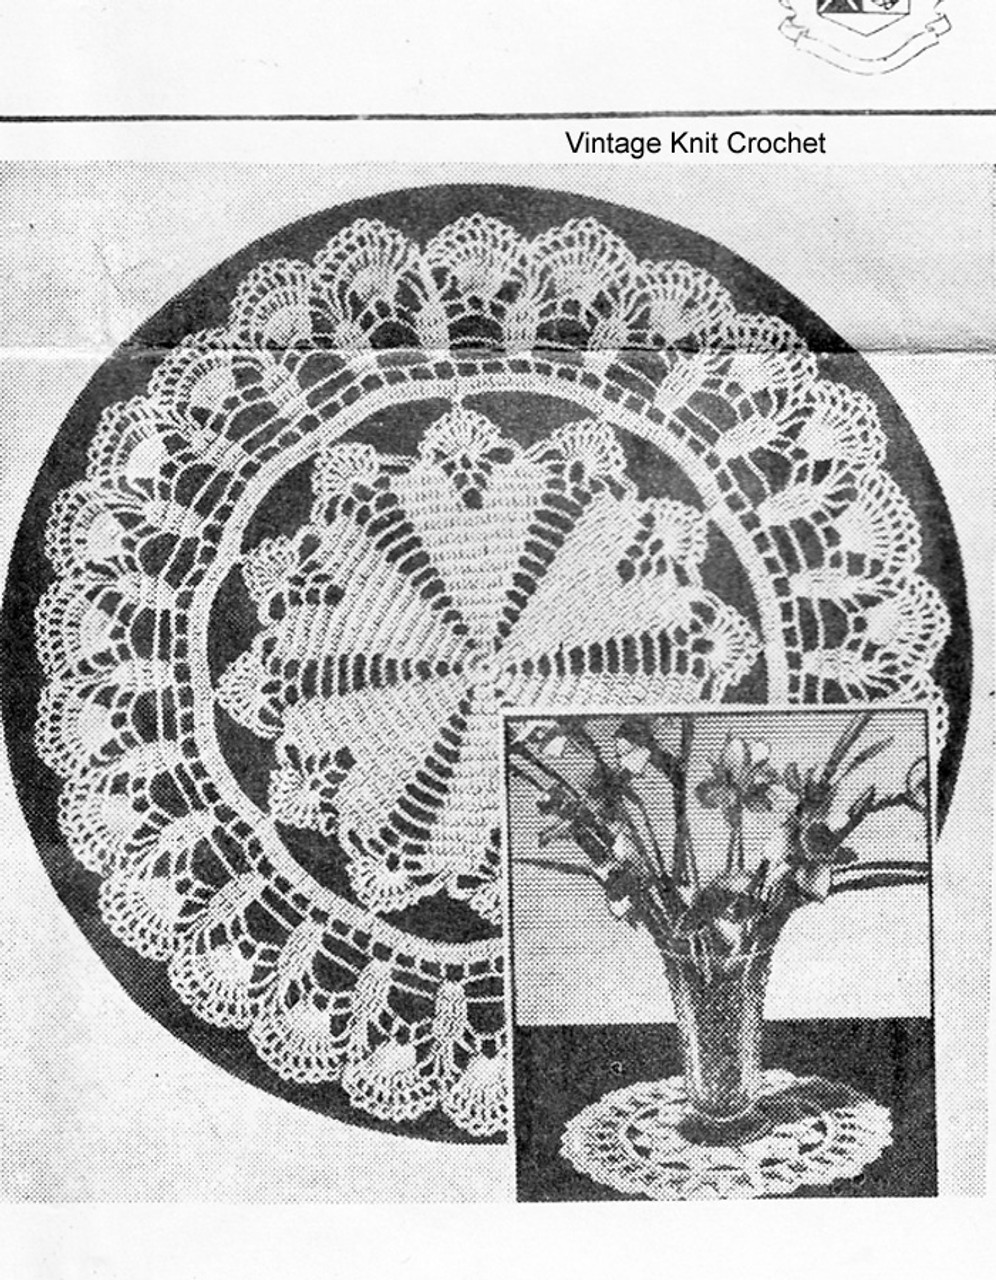 Vintage crocheted shell doily pattern No 1009